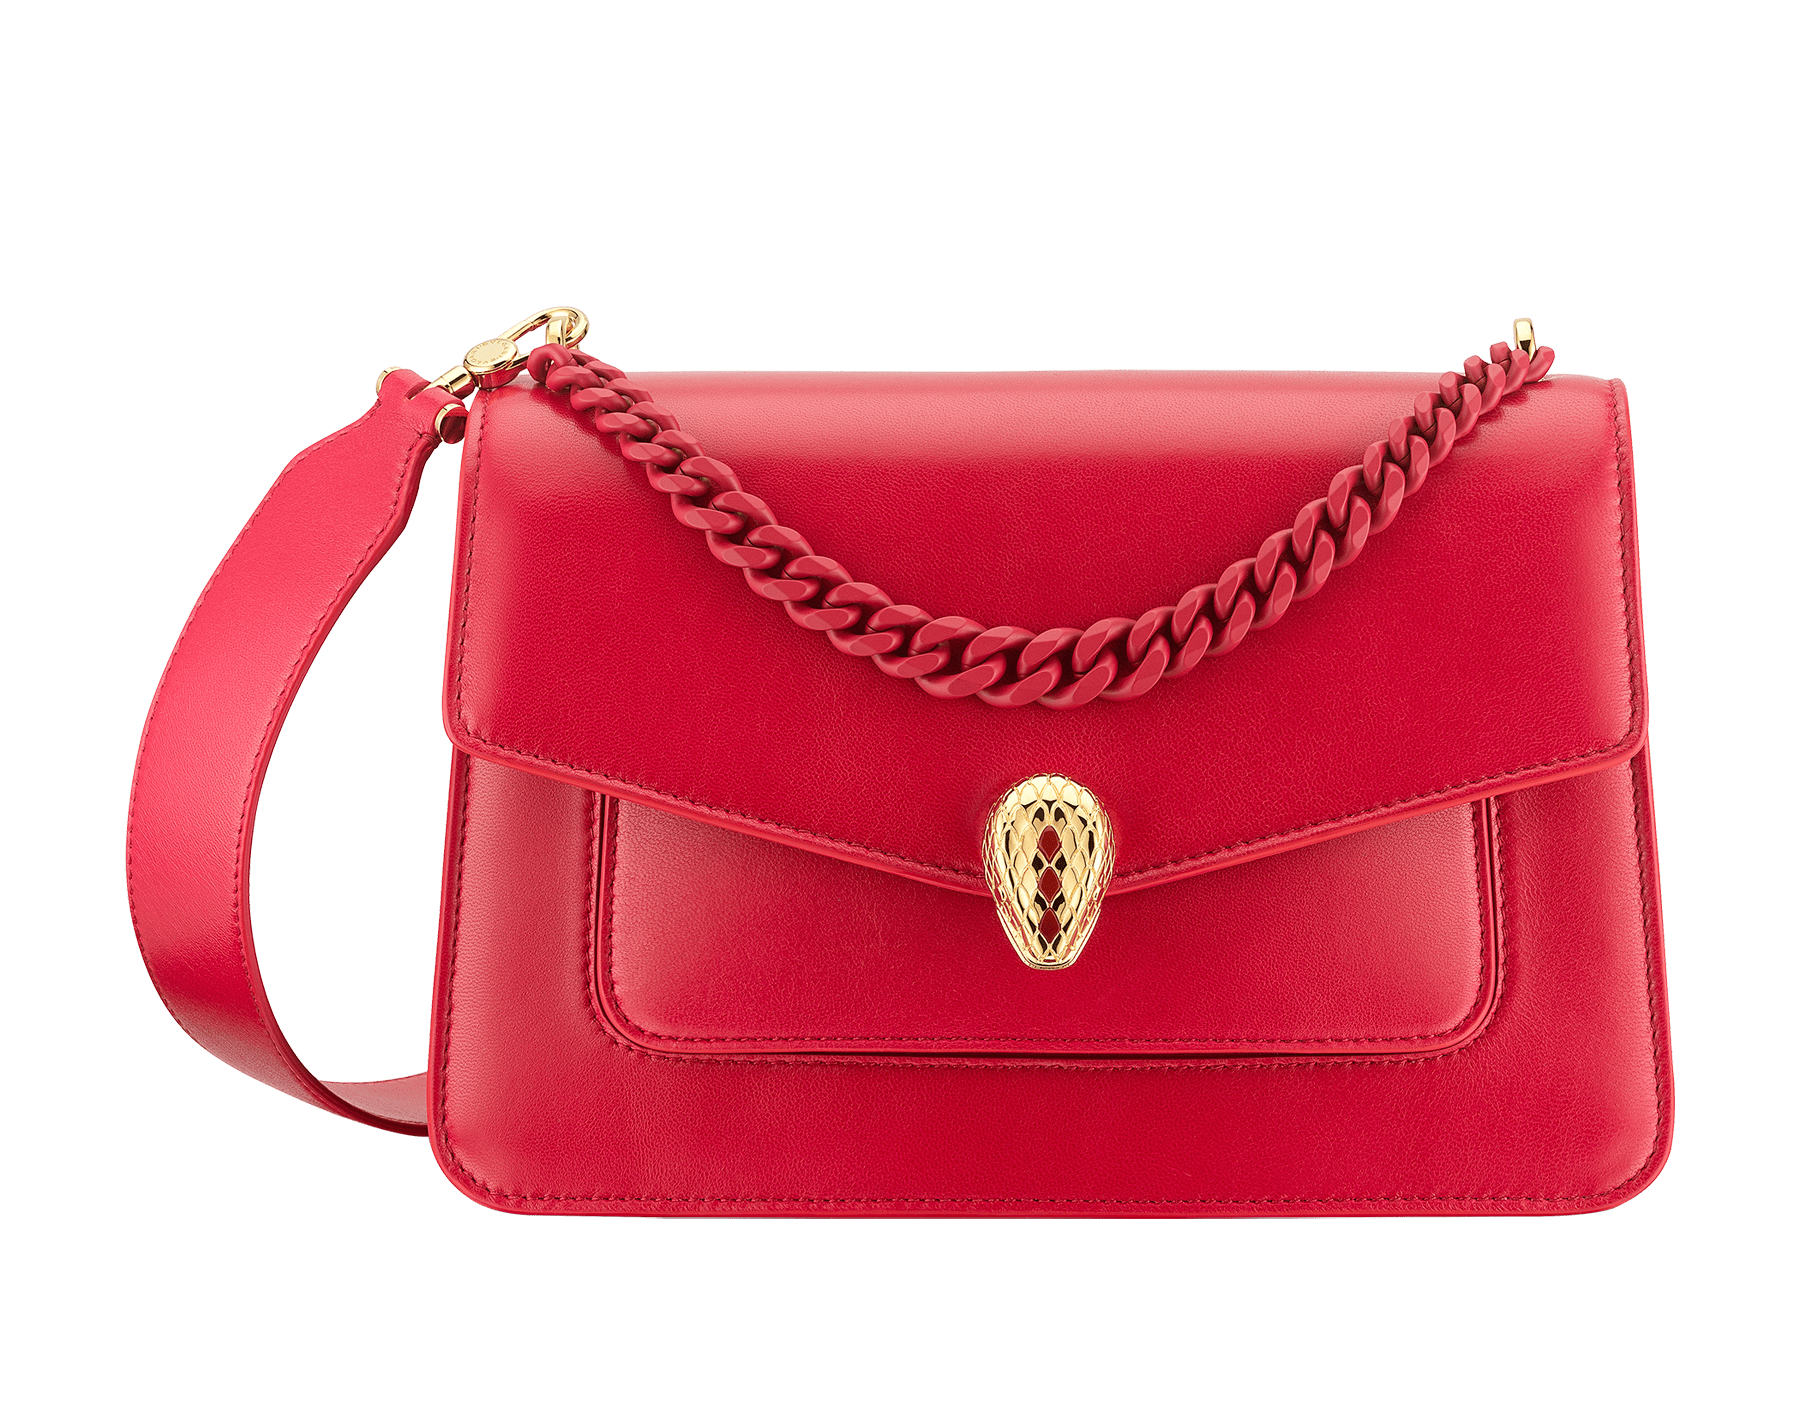 """Serpenti Forever"" maxi chain crossbody bag in Amaranth Garnet red nappa leather, with Pink Spinel fuchsia nappa leather internal lining. New Serpenti head closure in gold plated brass, finished with small red carnelian scales in the middle and red enamel eyes. 1138-MCN image 1"